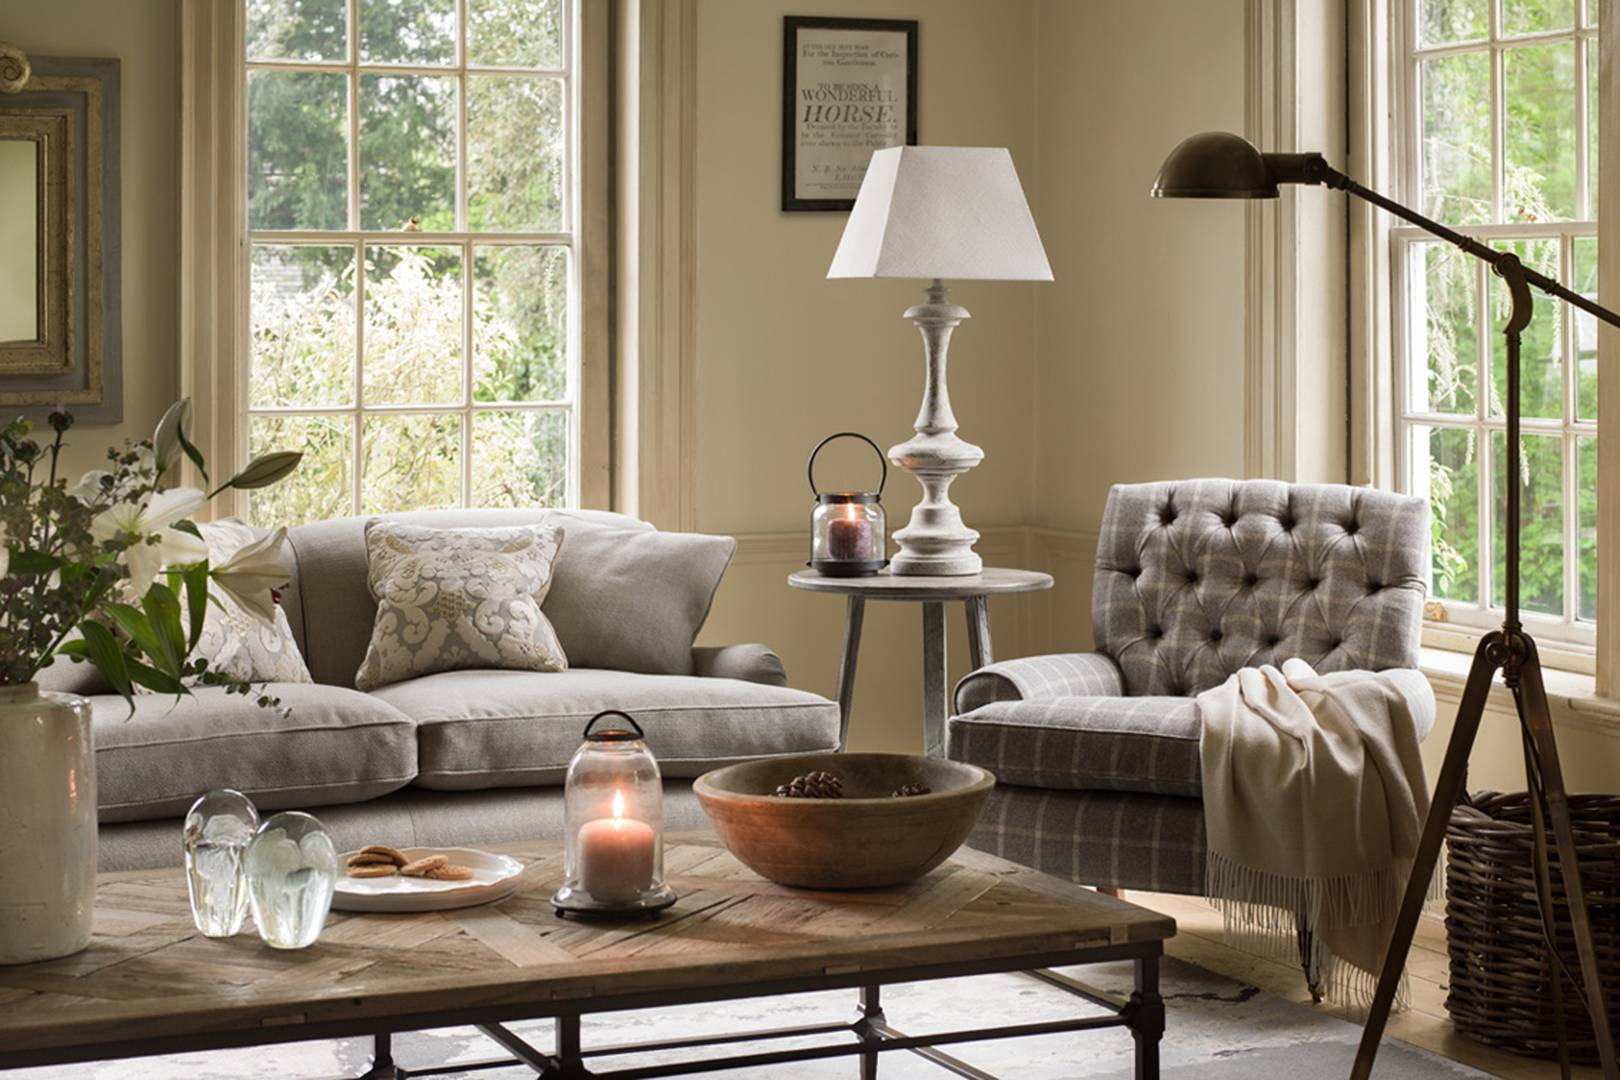 New England Interiors | Furniture and Decoration Ideas | House & Garden